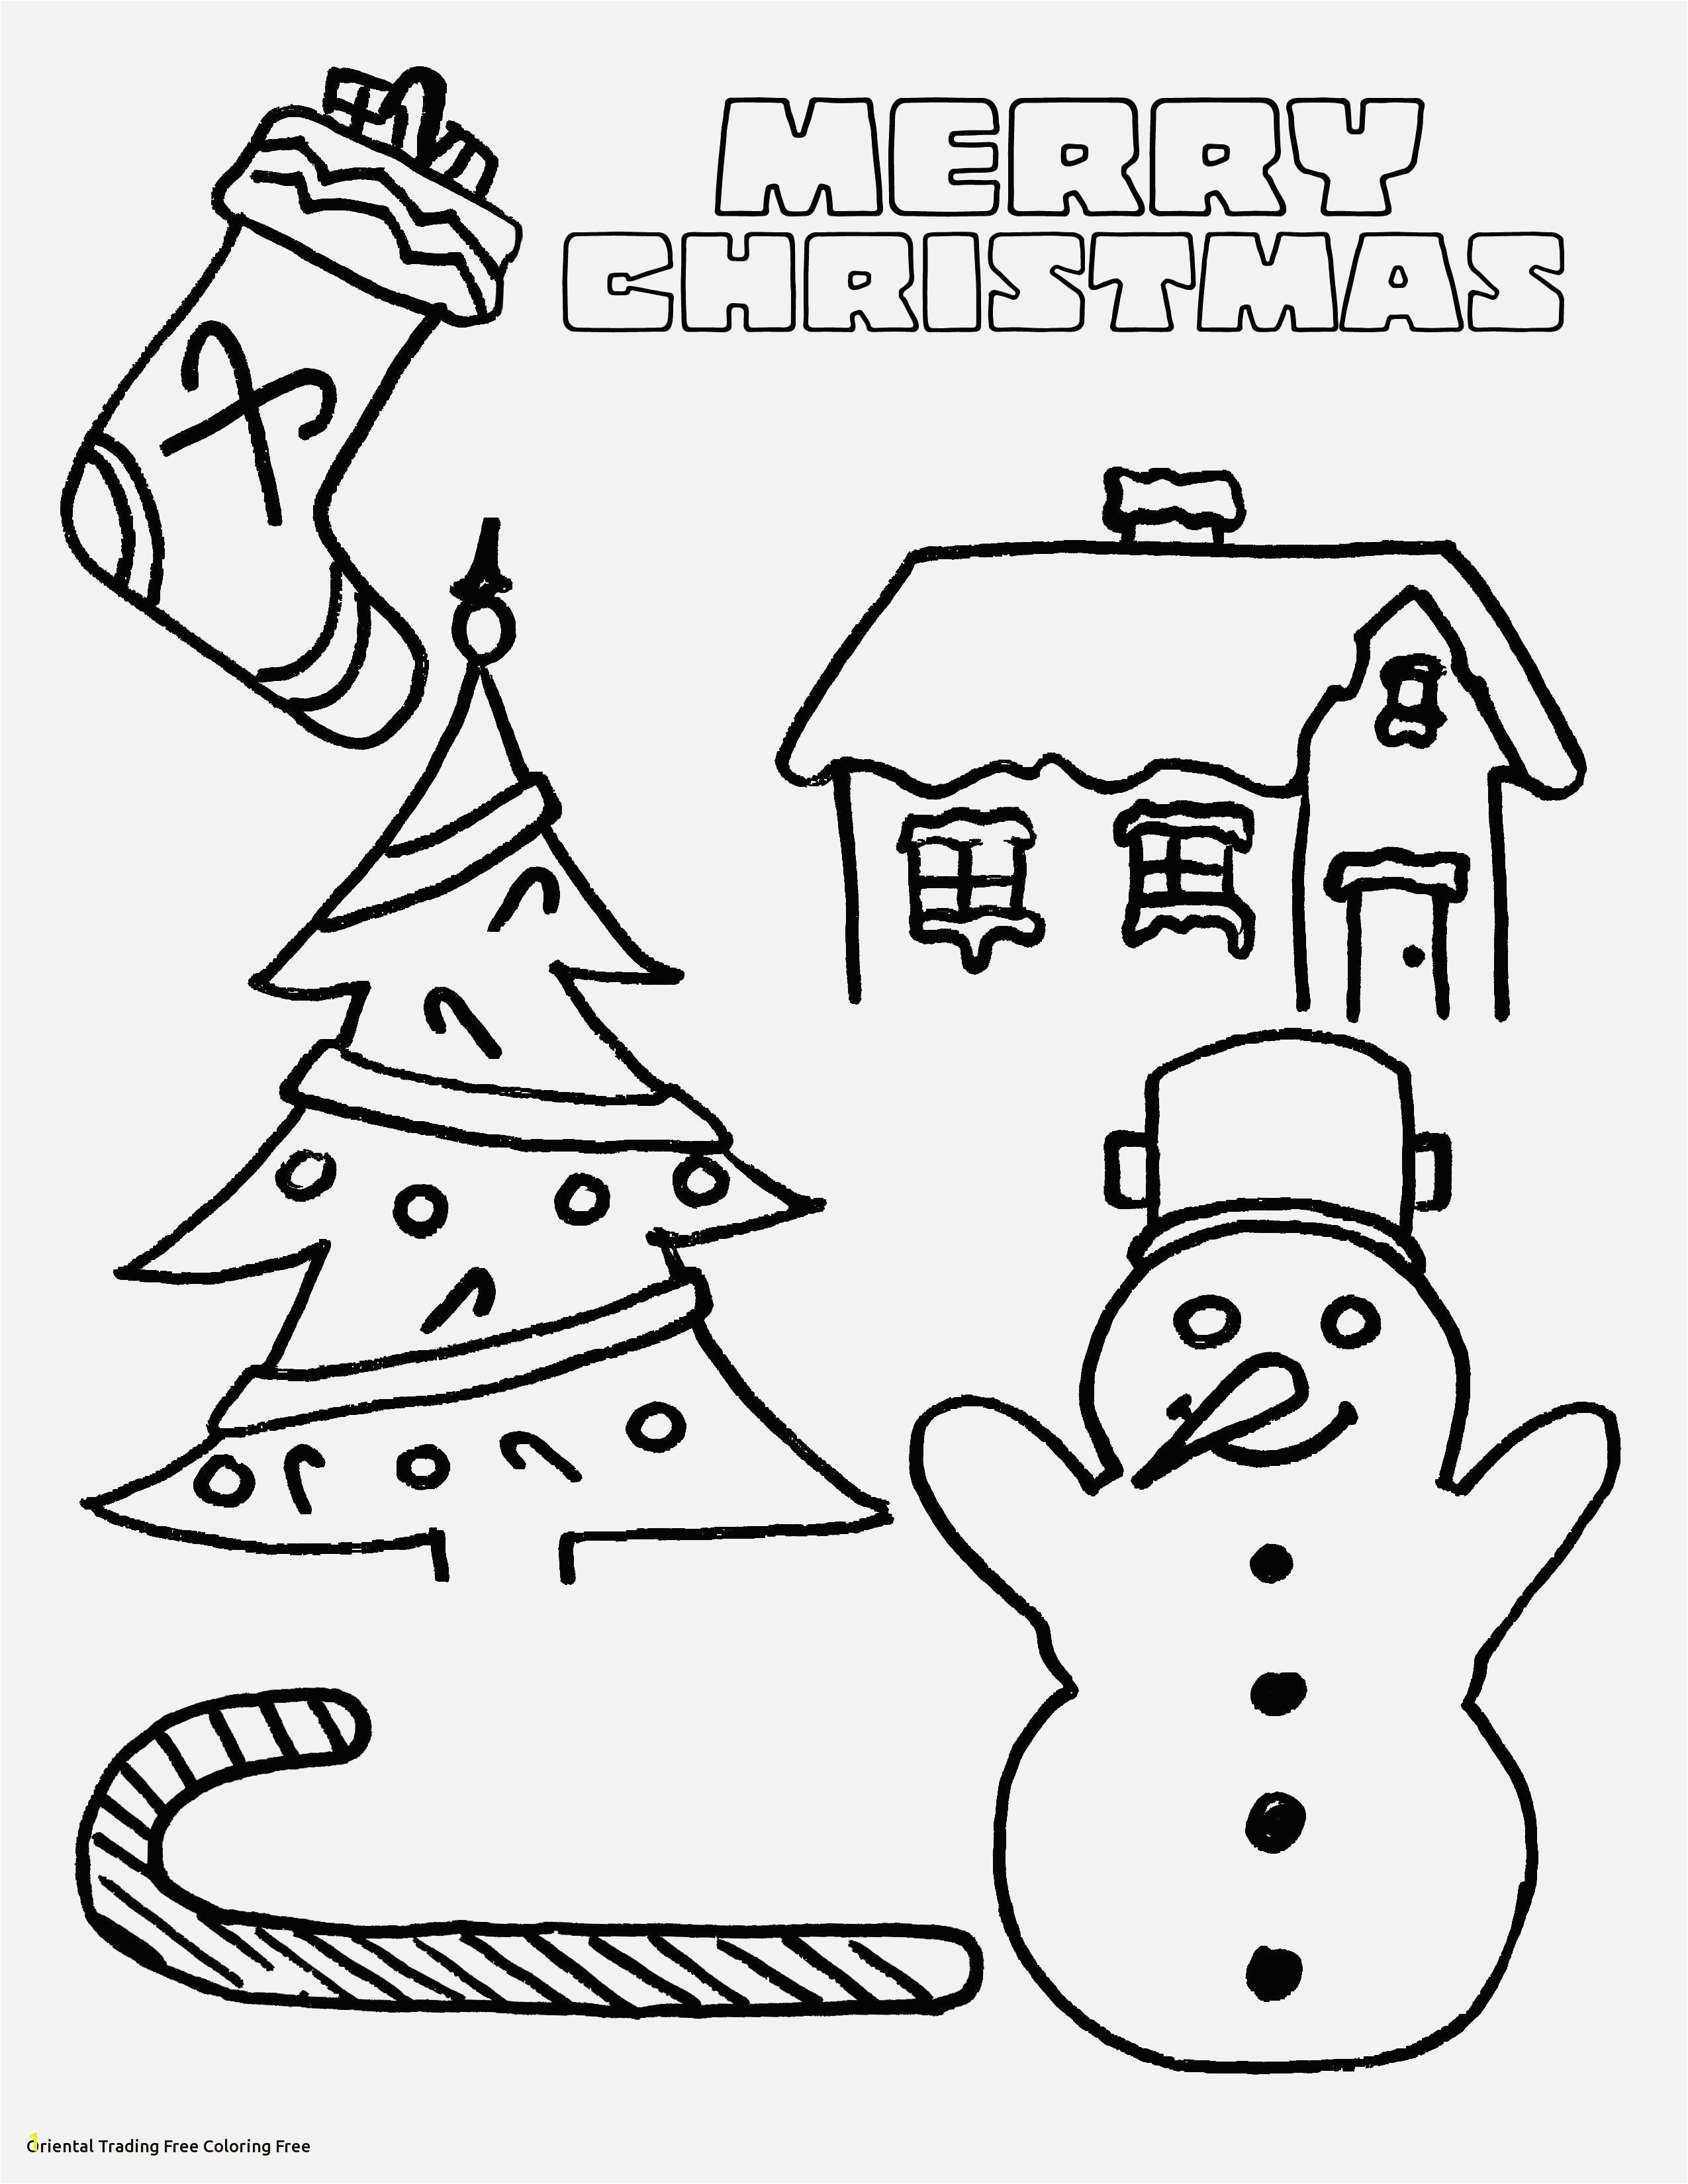 Free Animal Coloring Pages the First Ever Custom Coloring New Design Free Animal Coloring Pages